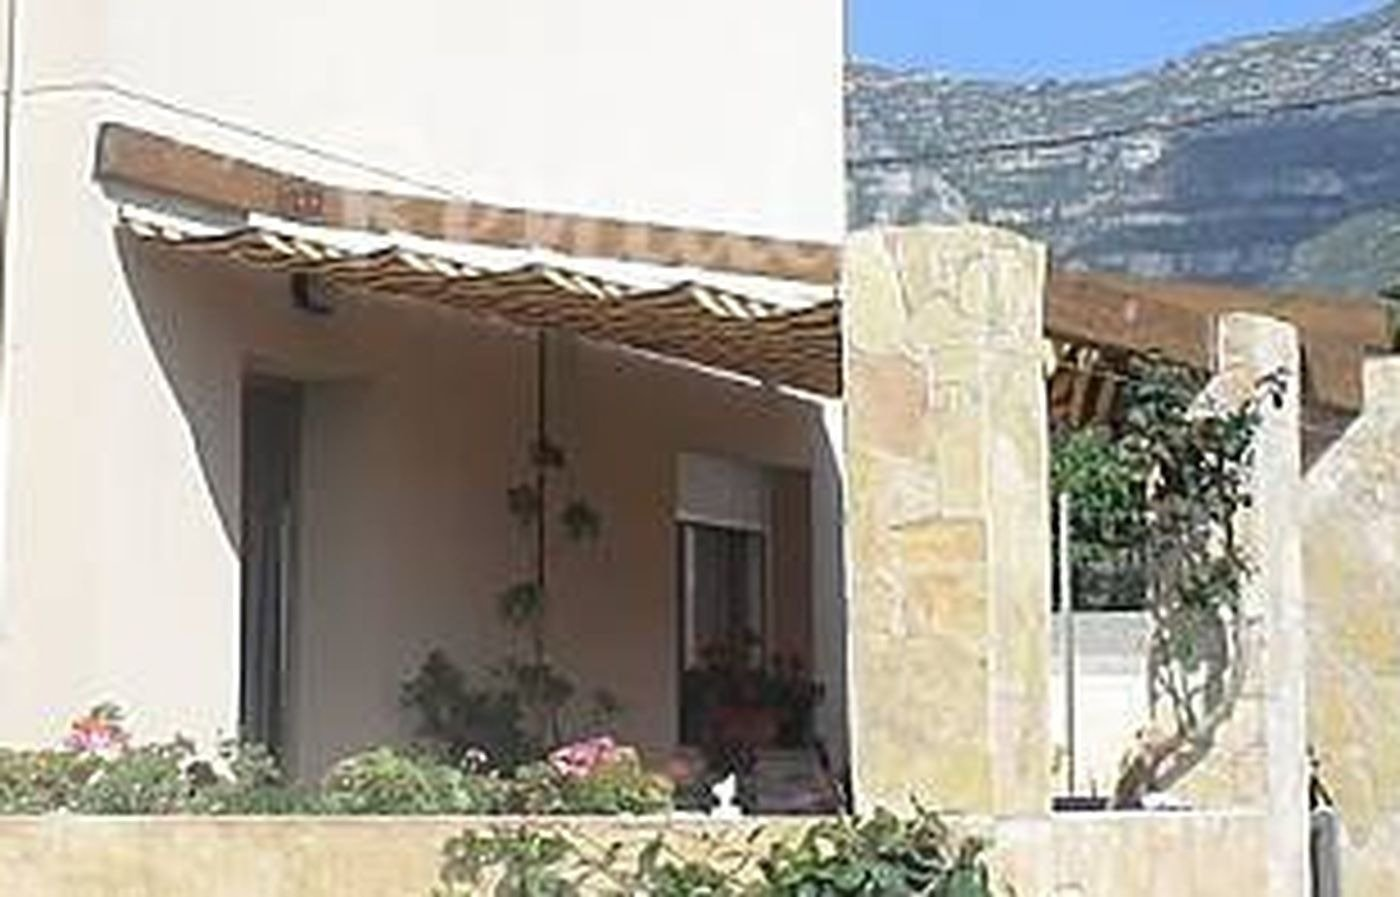 Townhouse for sale in MONTSIA MAR, Alcanar